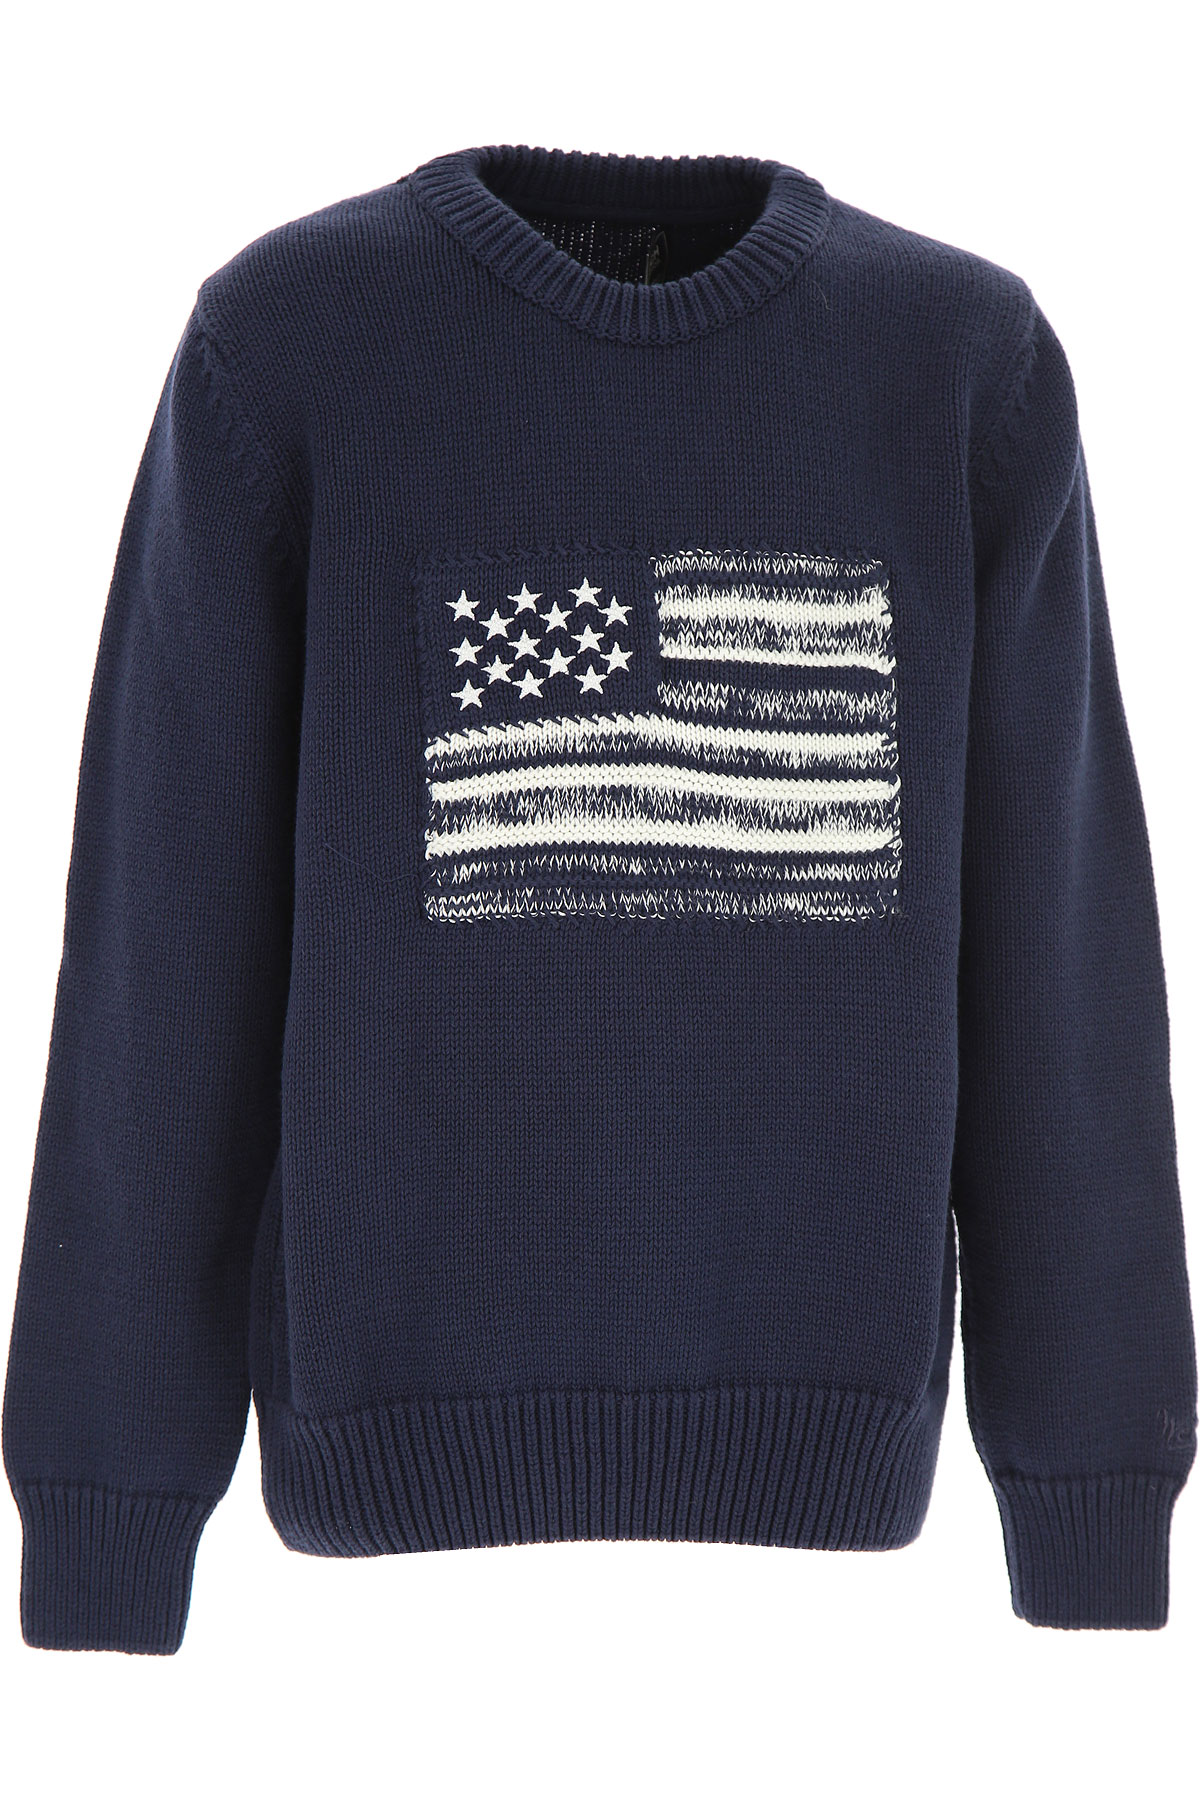 Cher Pas Woolrich Fringues Mes Pull qx0XwB50